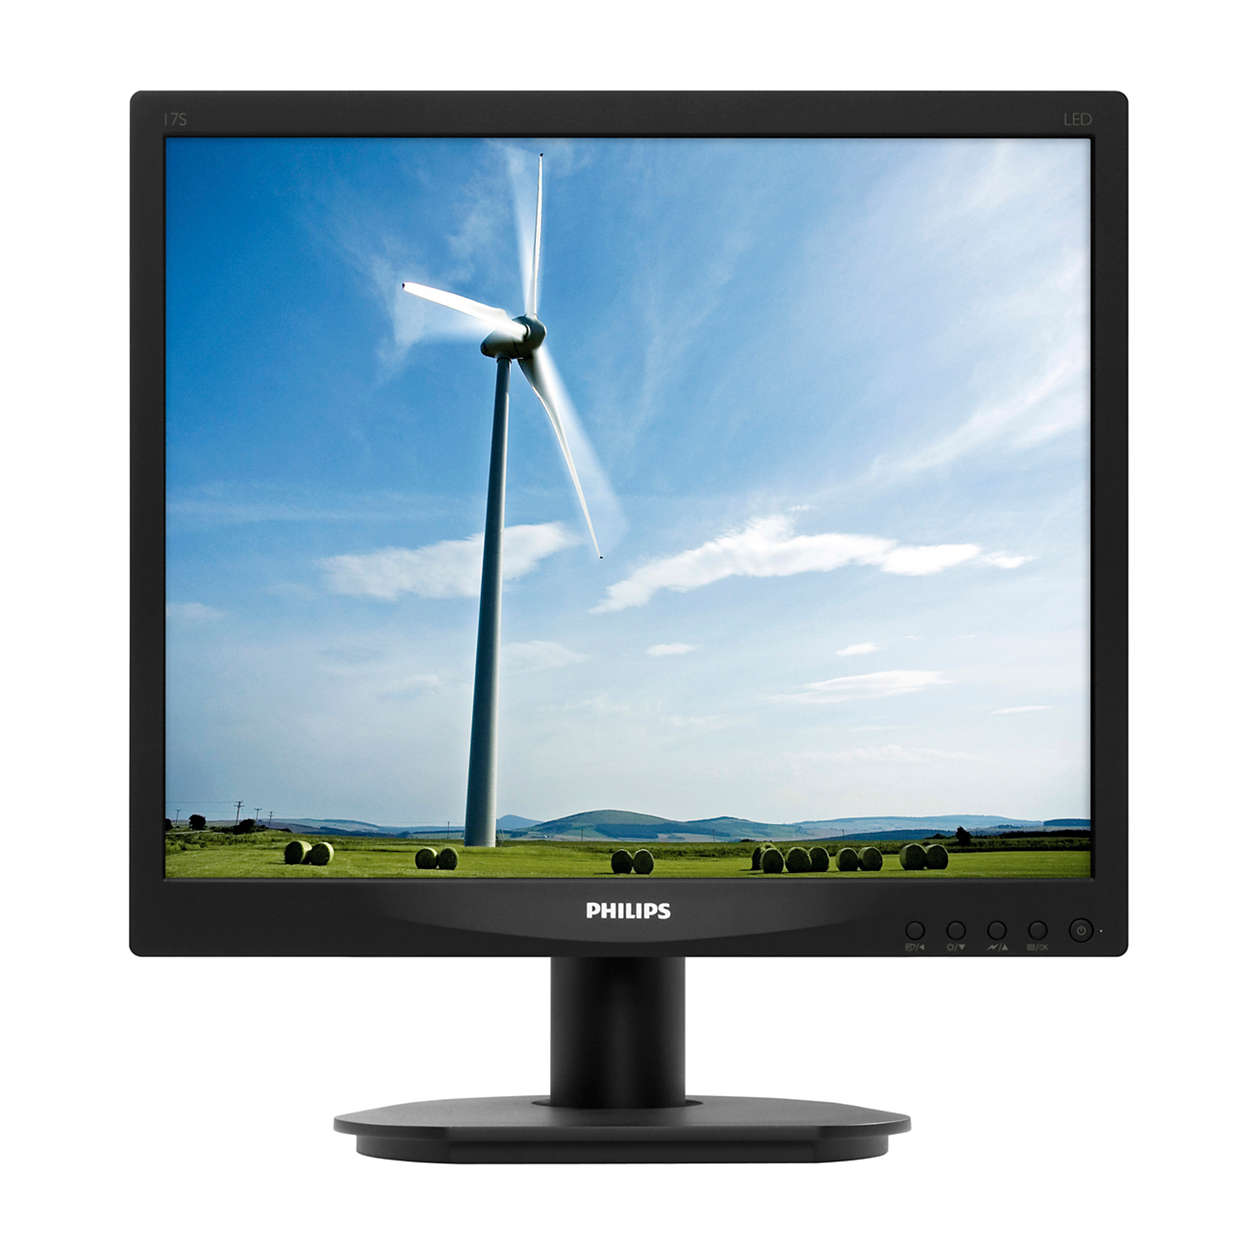 lcd monitor mit led hintergrundbeleuchtung 17s4lsb 00 philips. Black Bedroom Furniture Sets. Home Design Ideas